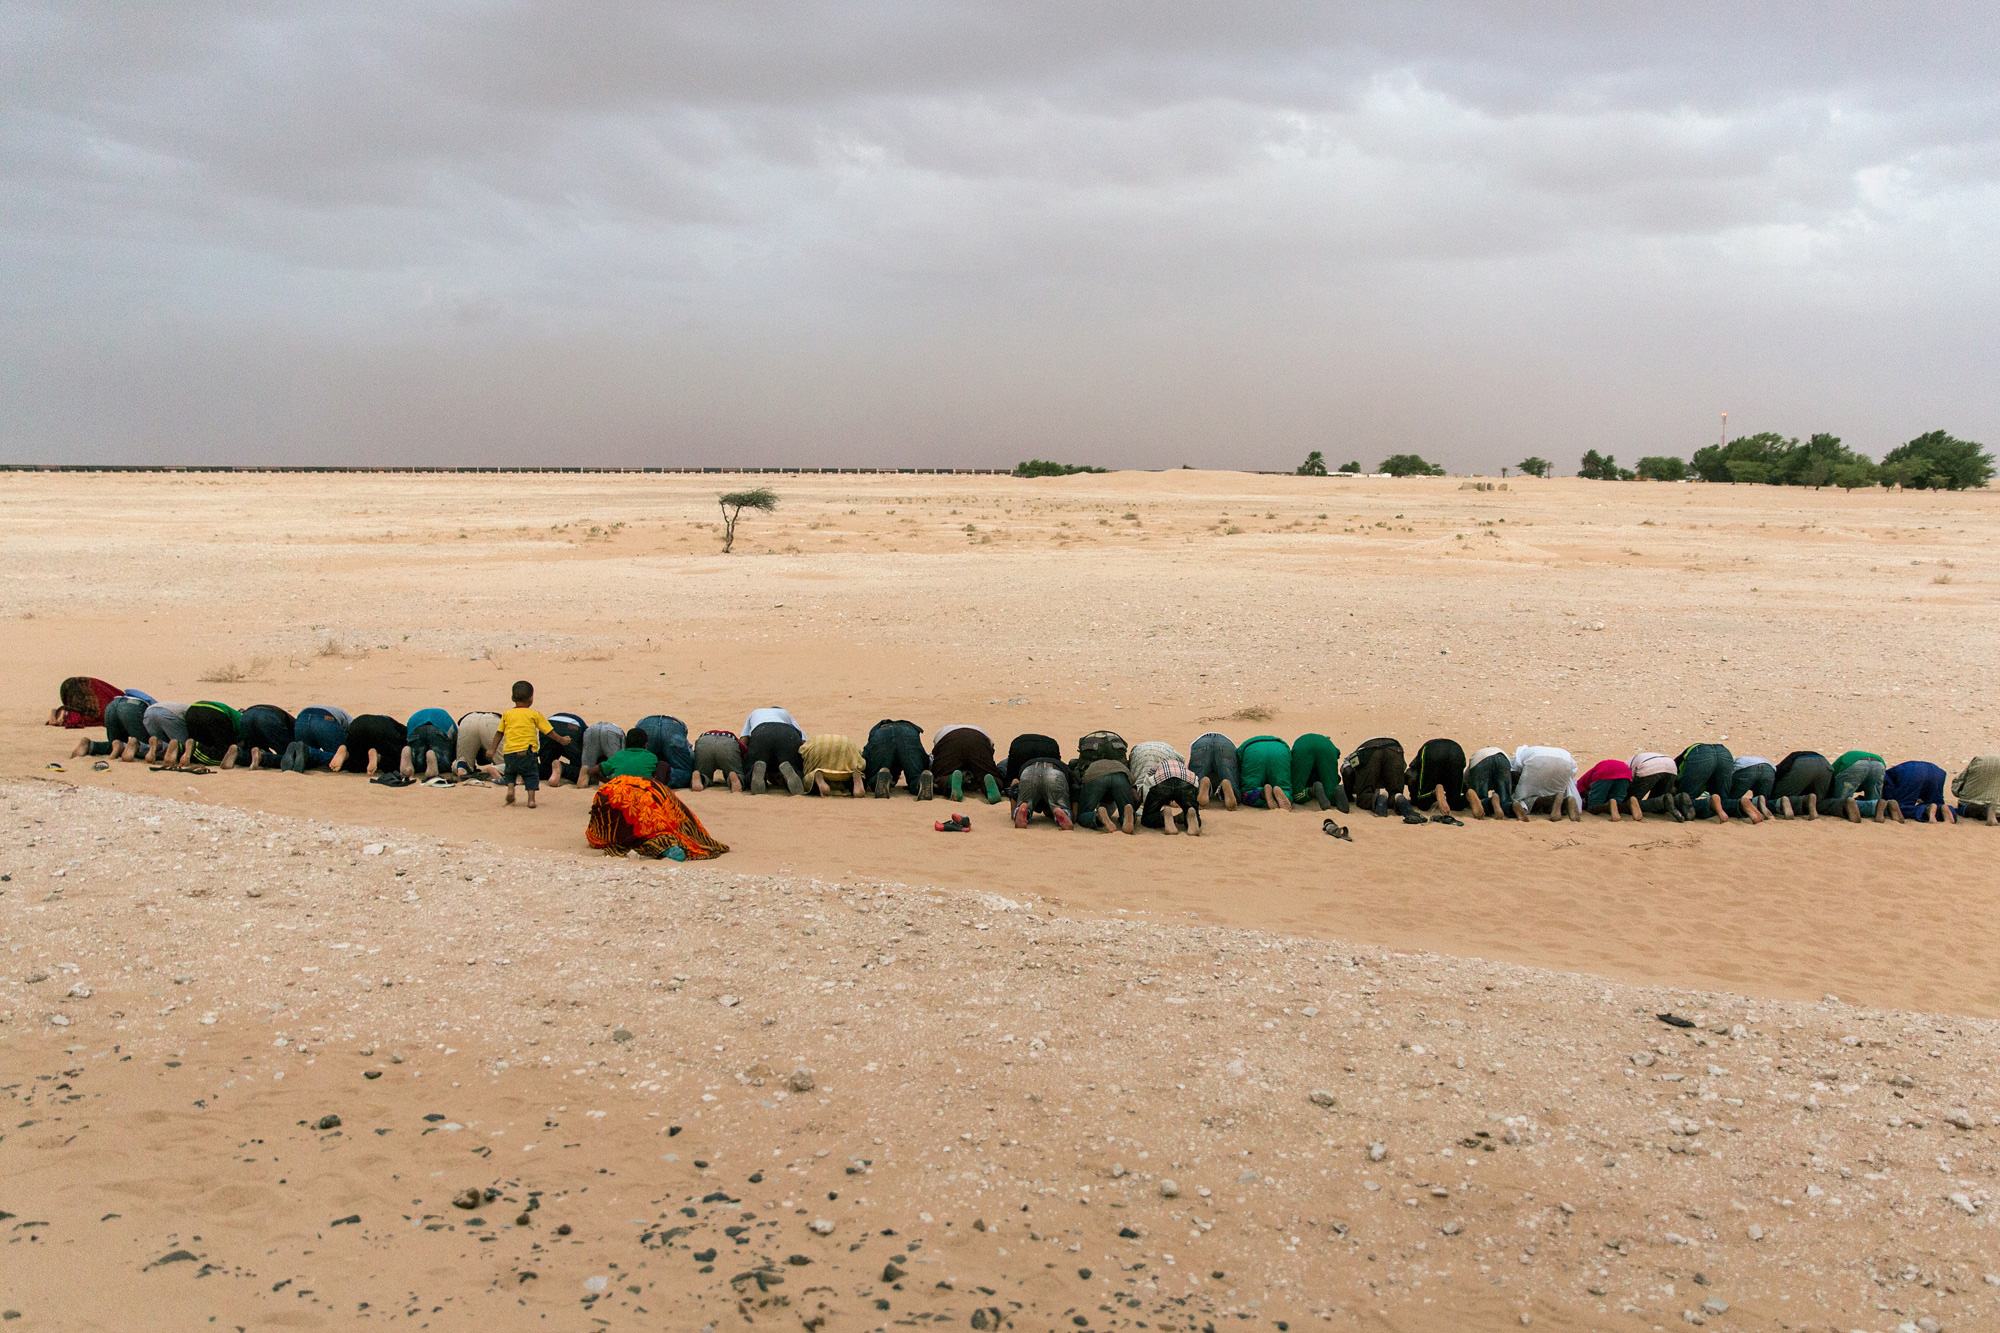 Travelers use a train stop to pray at sunset on September 29, 2015. Nearly the entire population of Mauritania is Muslim. (George Popescu/GroundTruth)